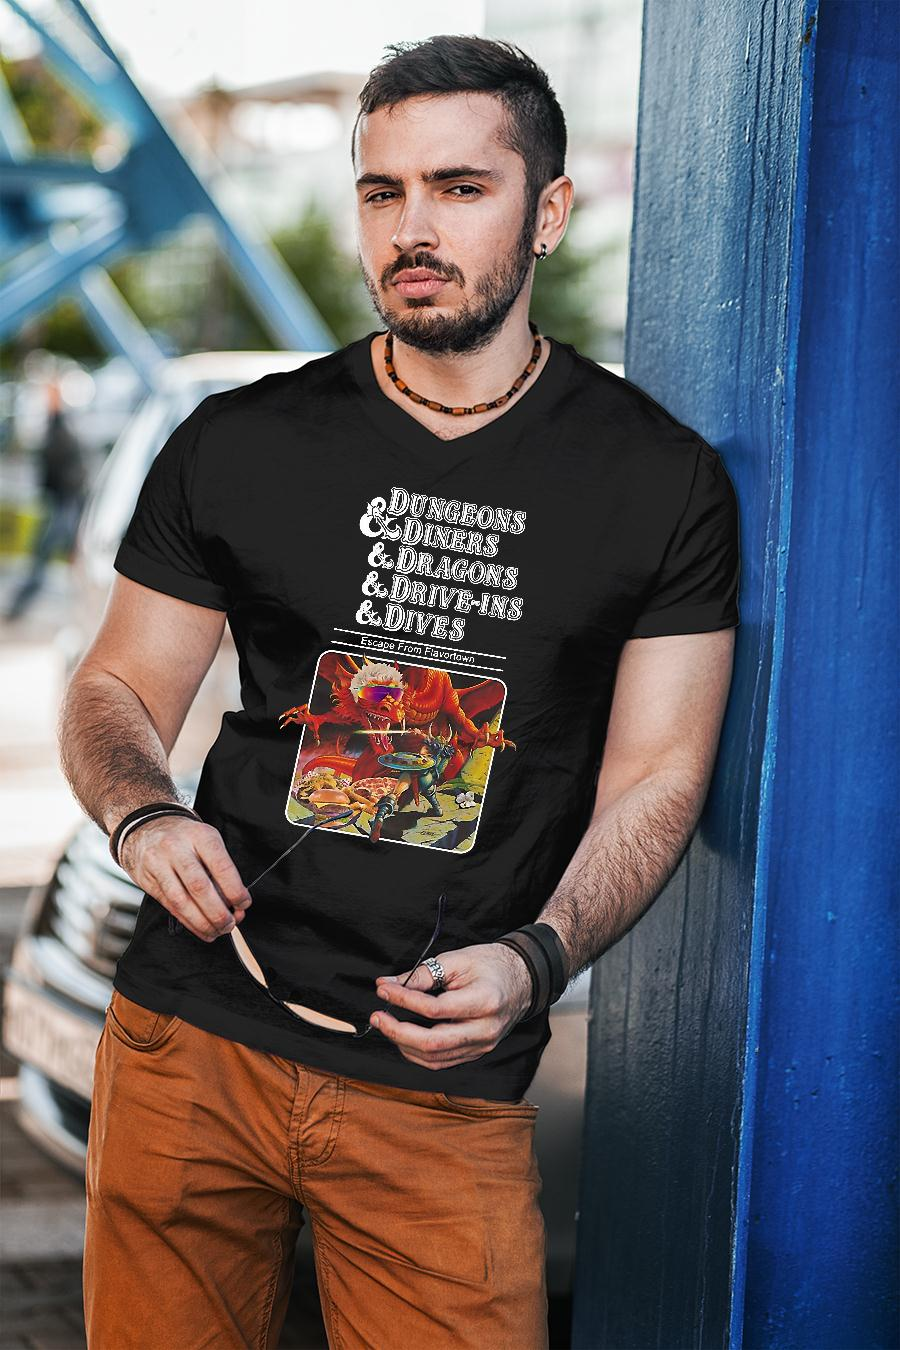 Dungeons and dragons and diners and dives shirt unisex